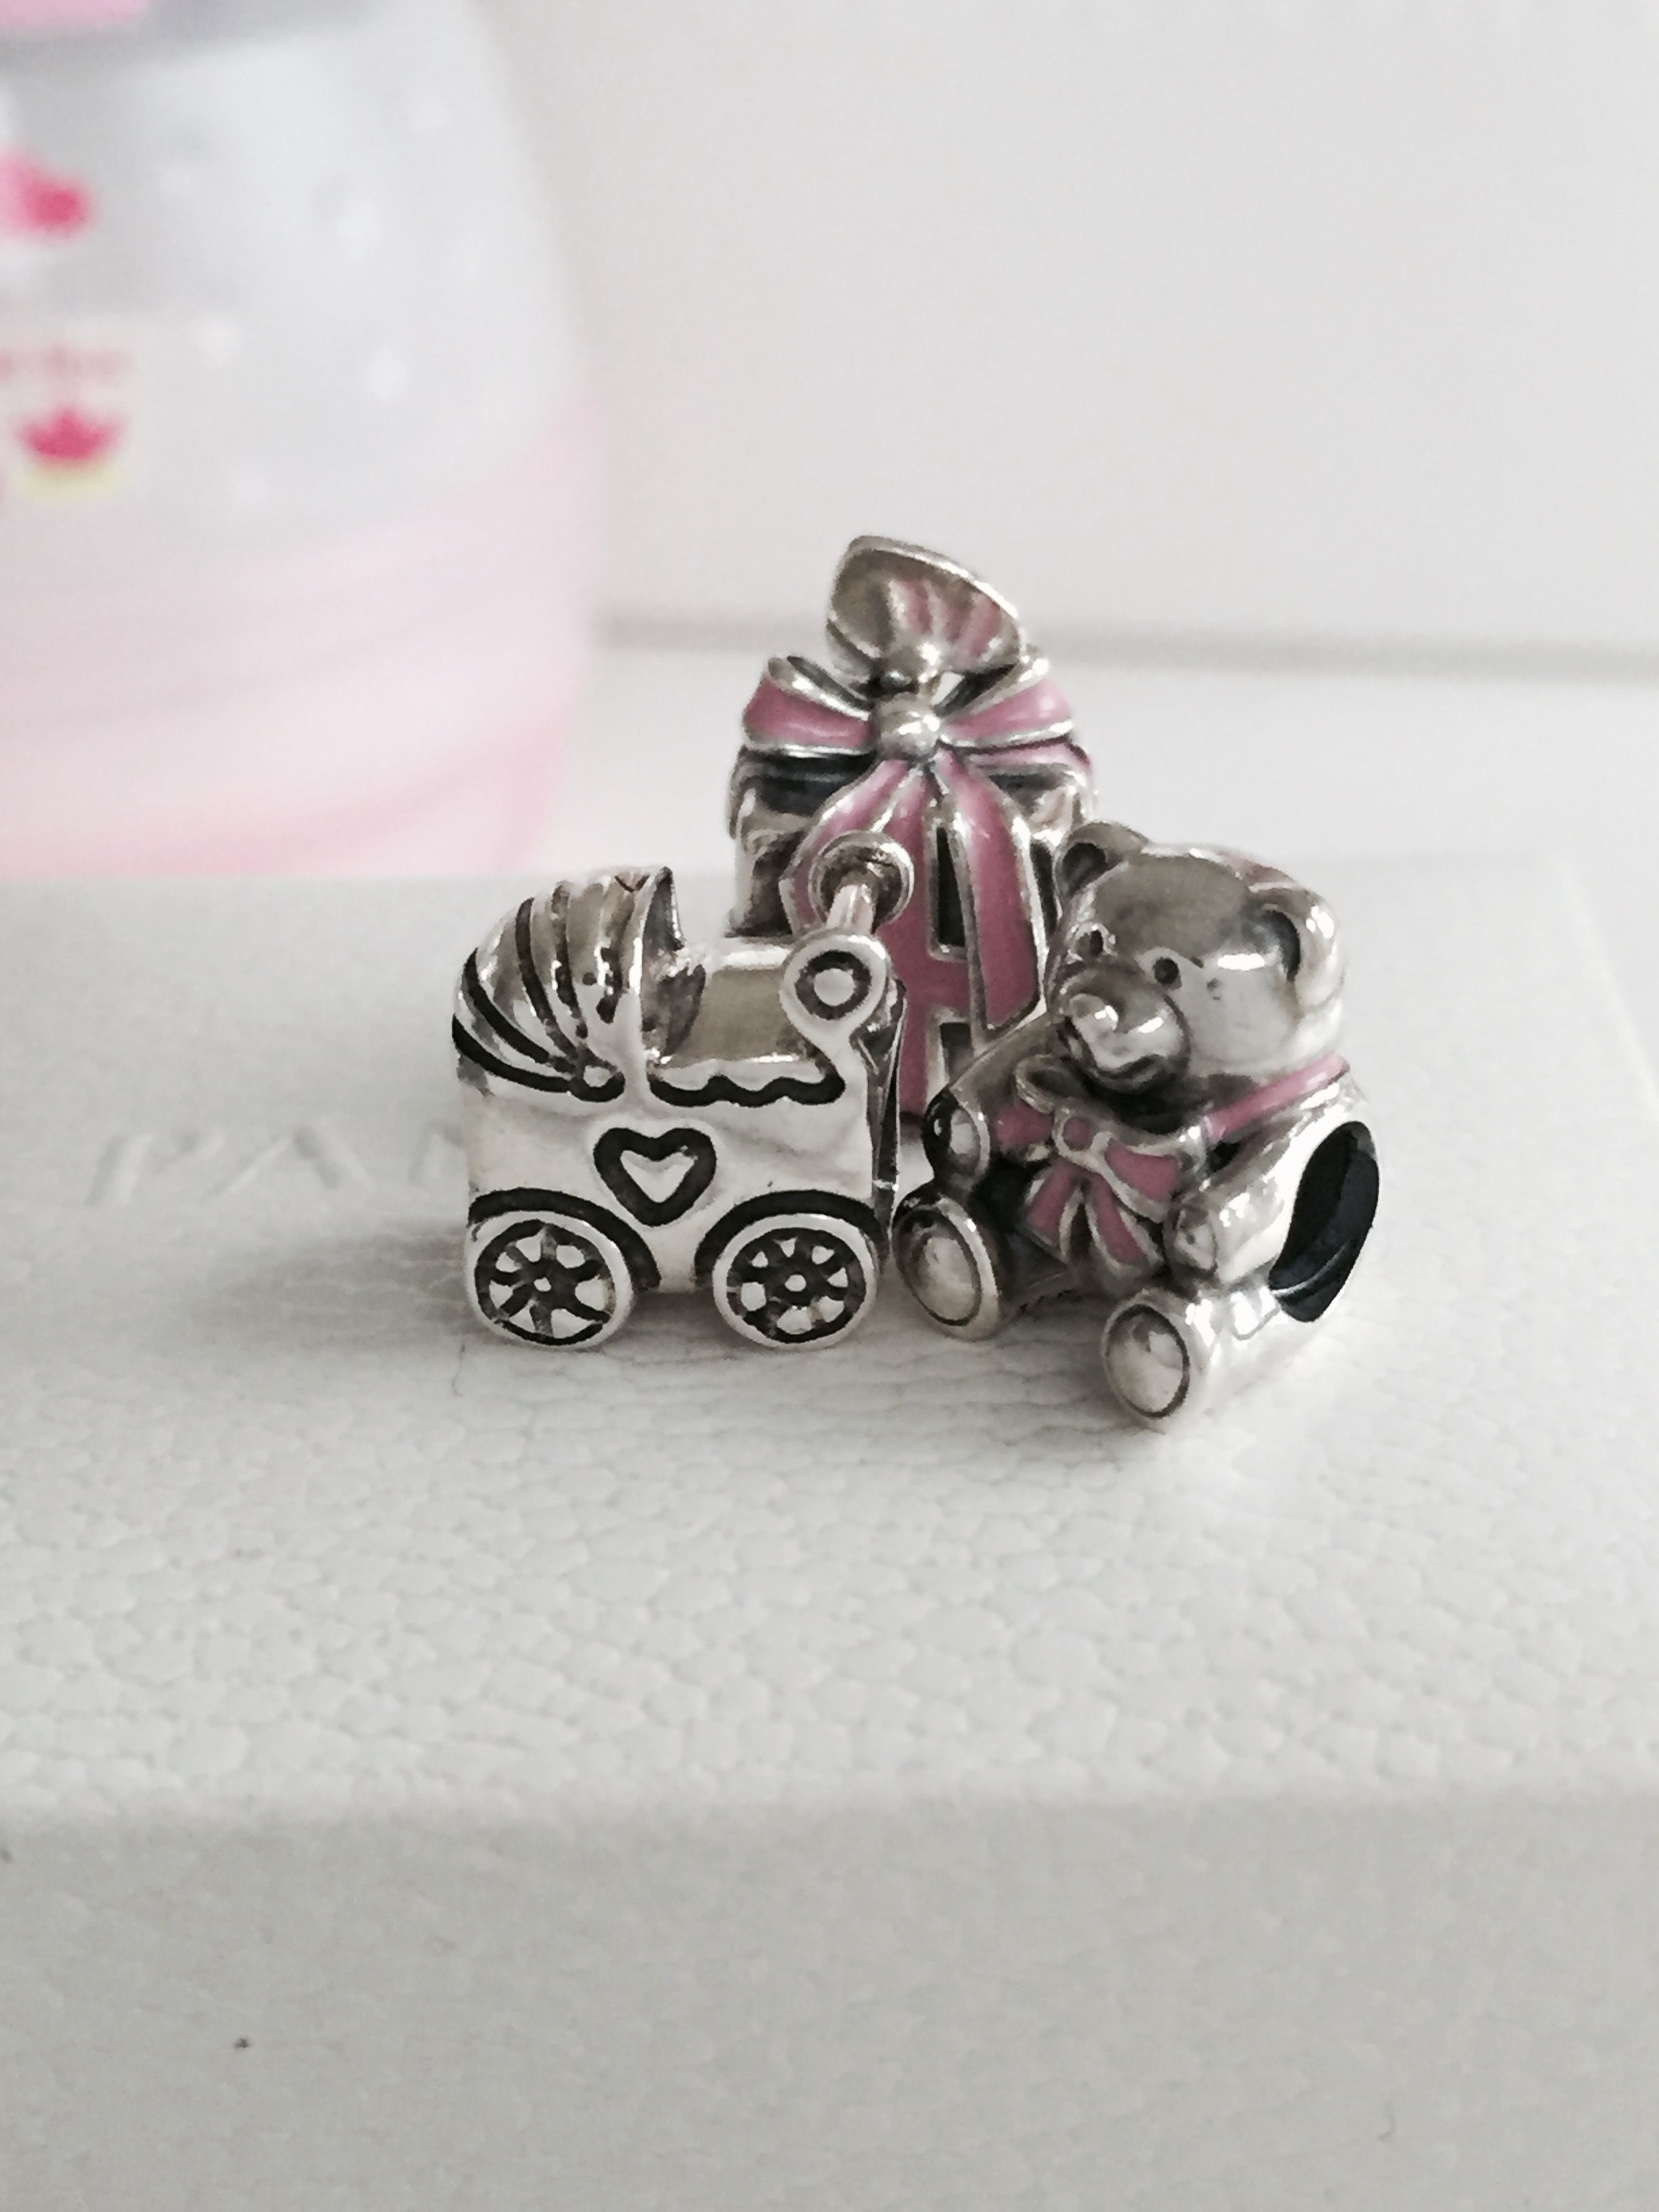 Baby Pram Pandora Charm Cute Charms To Celebrate A Newborn Little Baby Girl And The